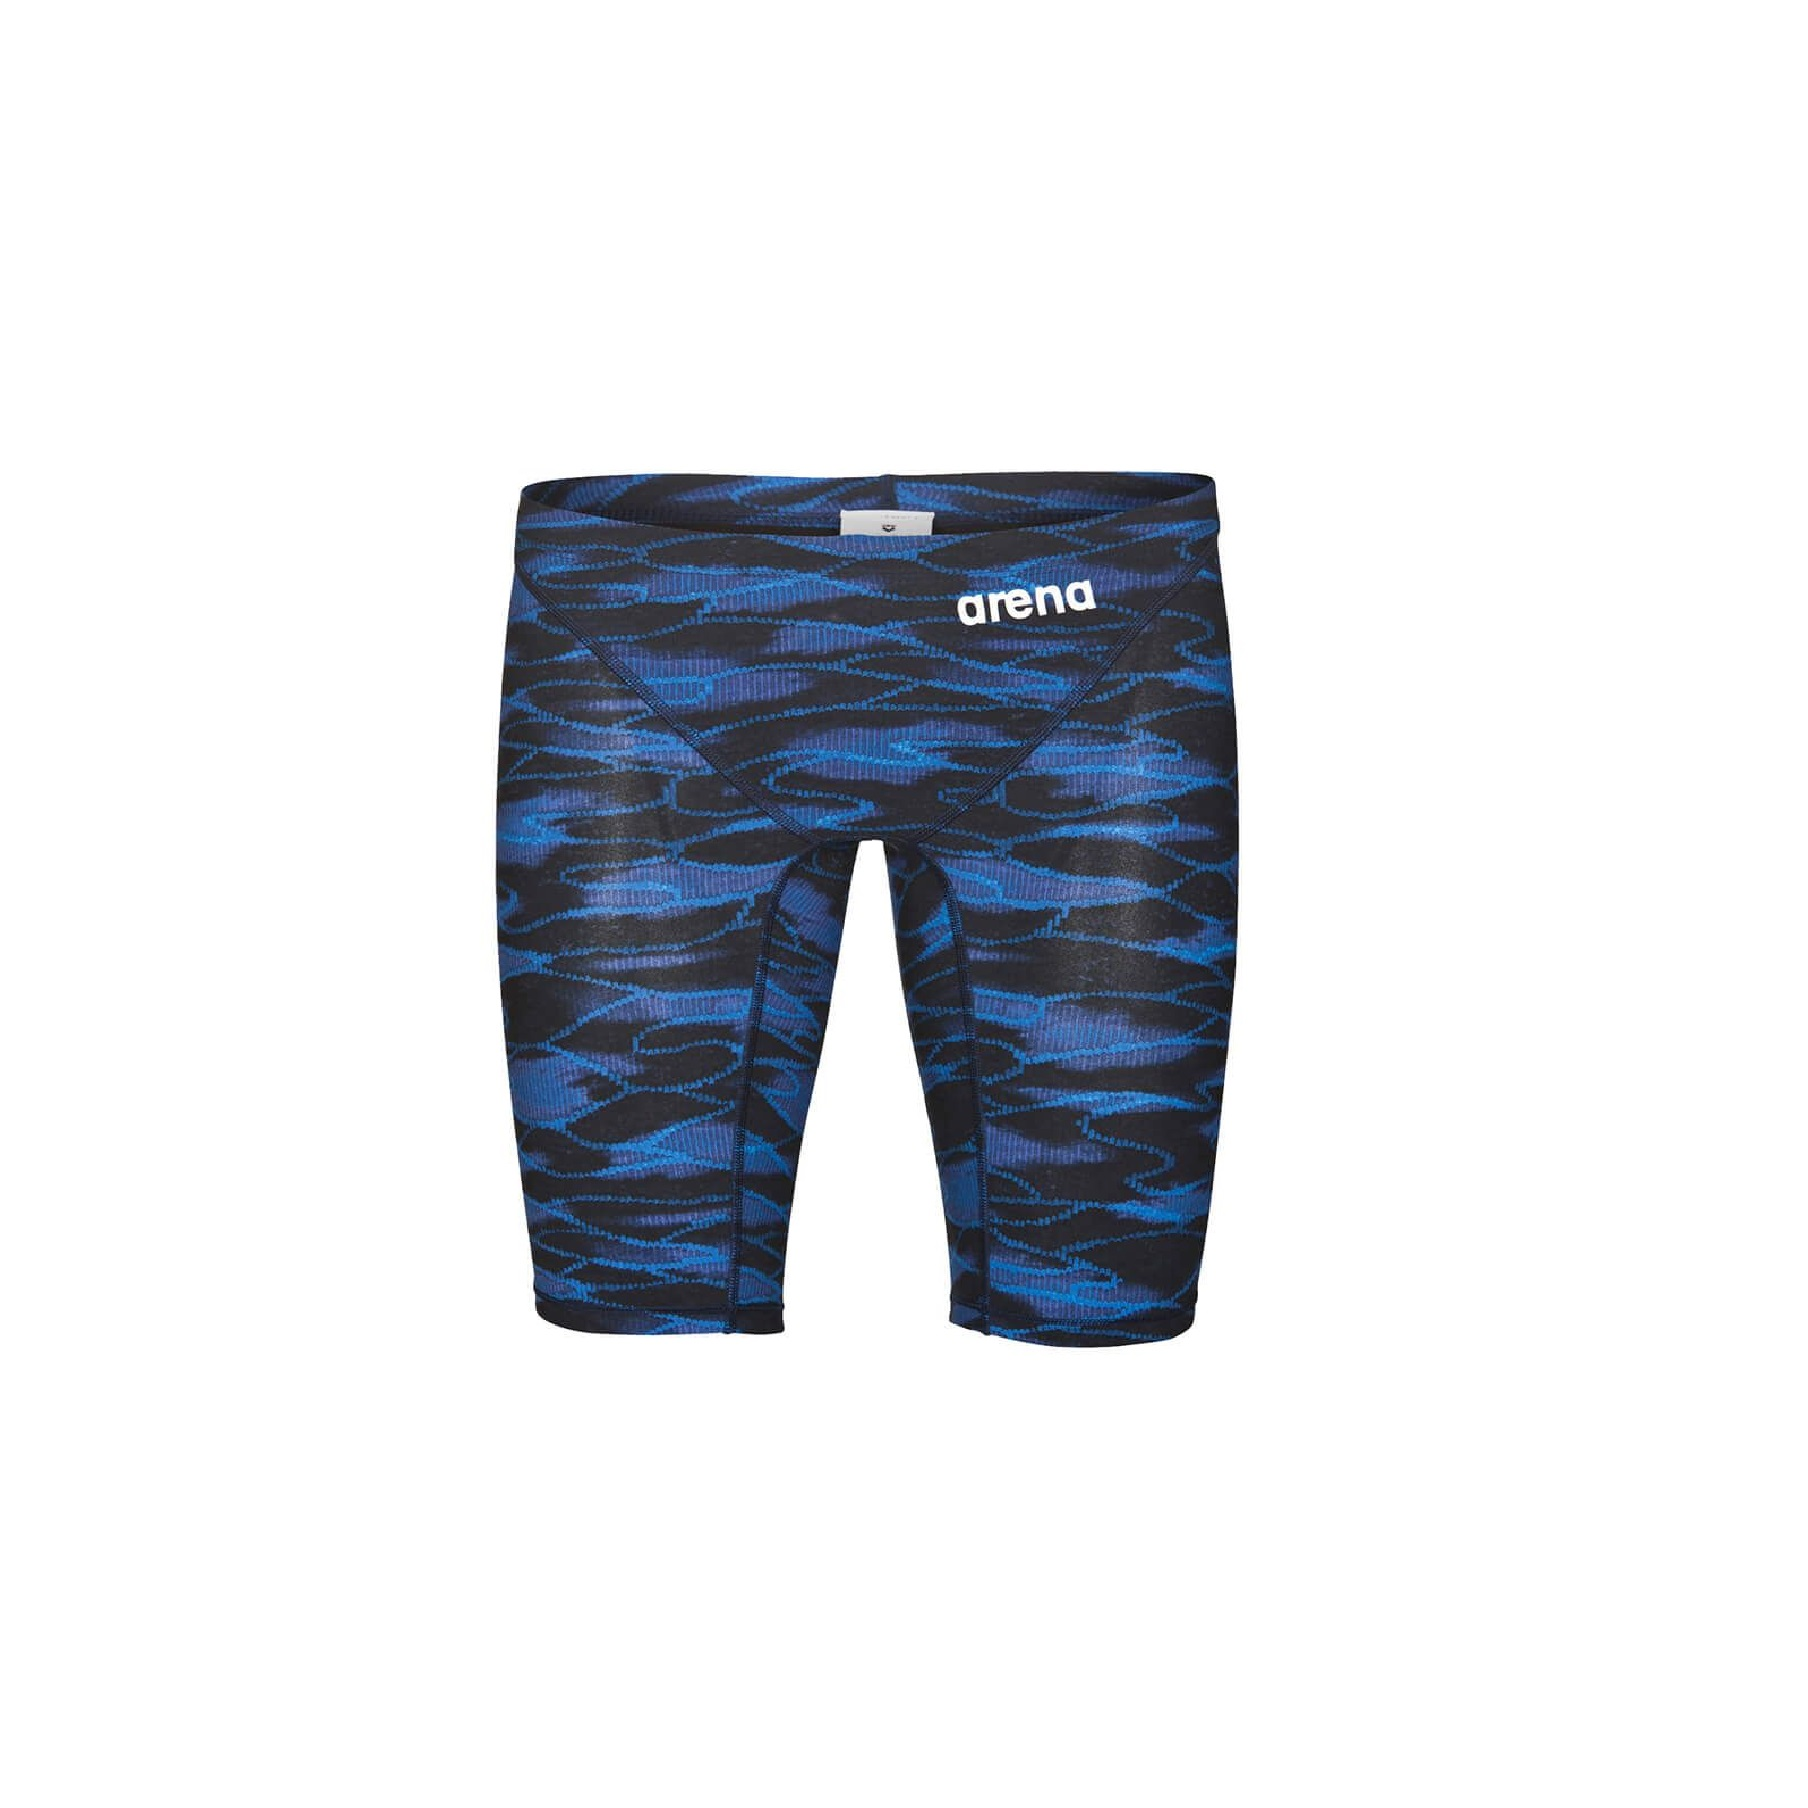 e0733c3c78 Arena Mens Powerskin ST 2.0 Limited Edition Jammer - Ly Sports